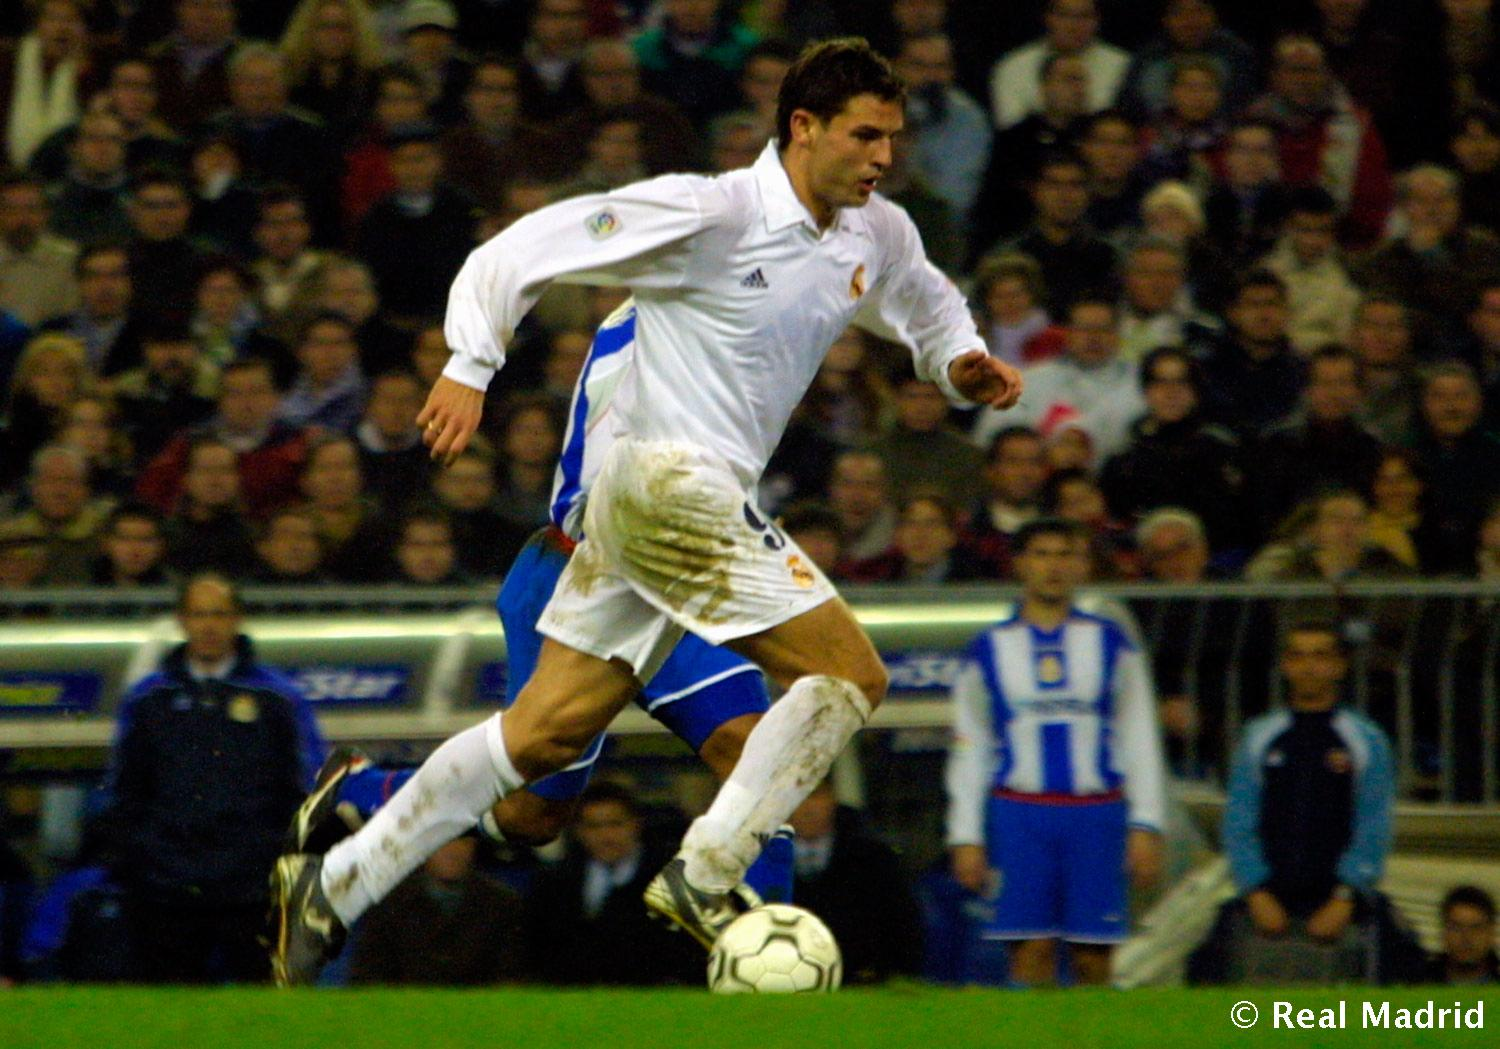 Real Madrid - Morientes 4 - 03-04-2015